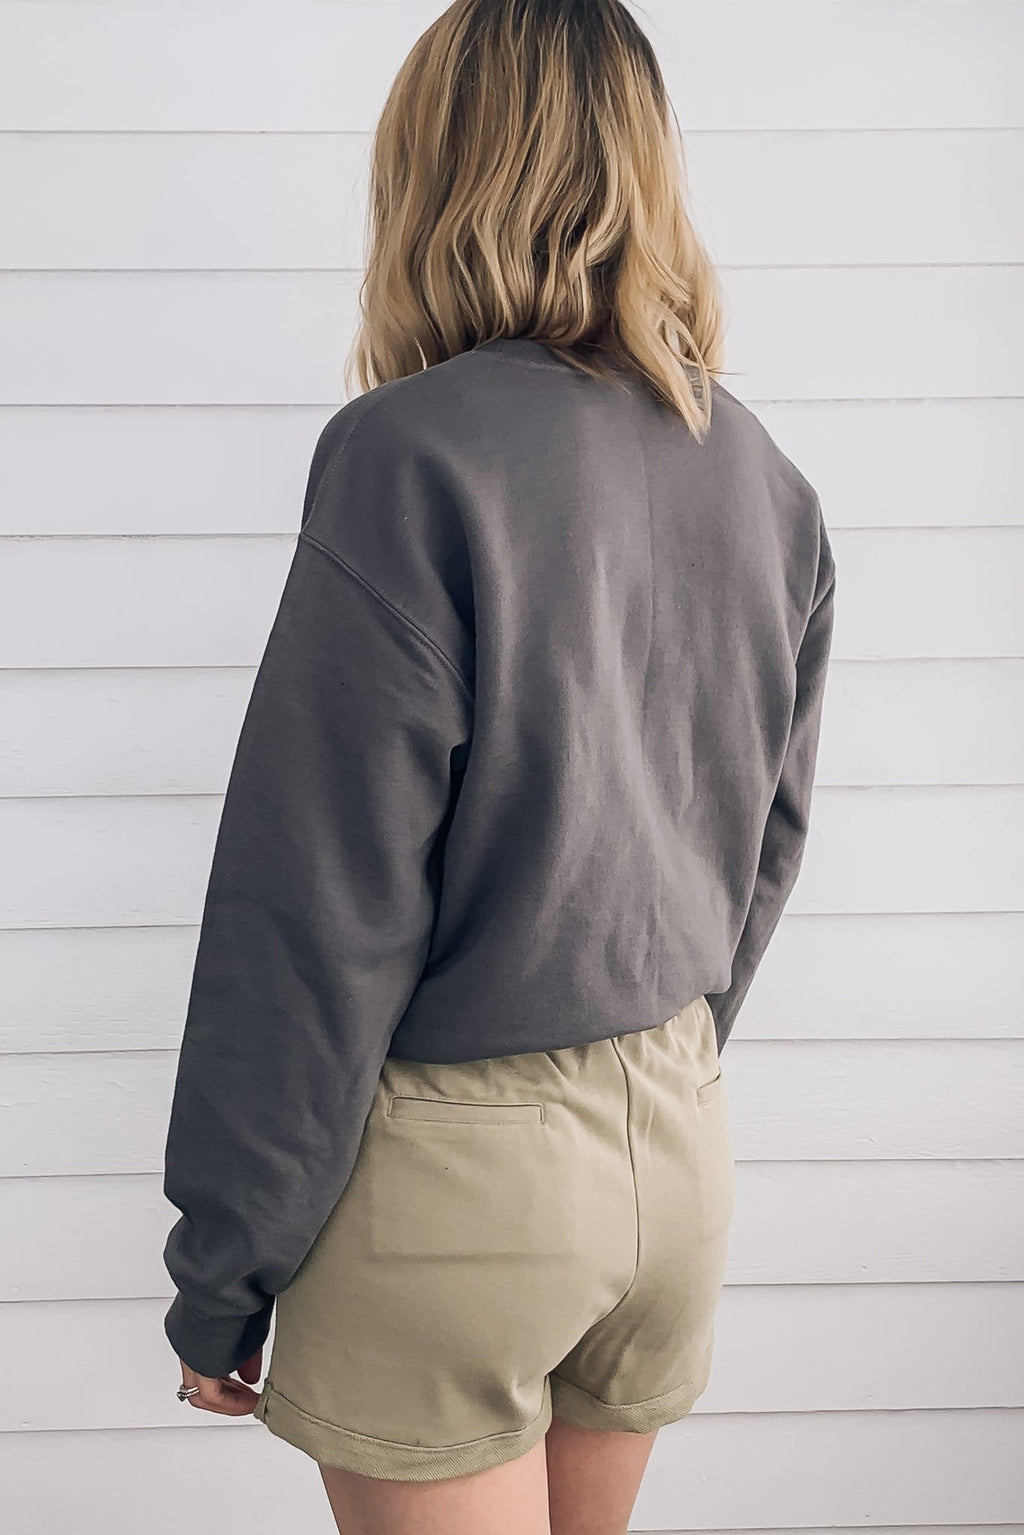 Homebody Sweatshirt - Charcoal